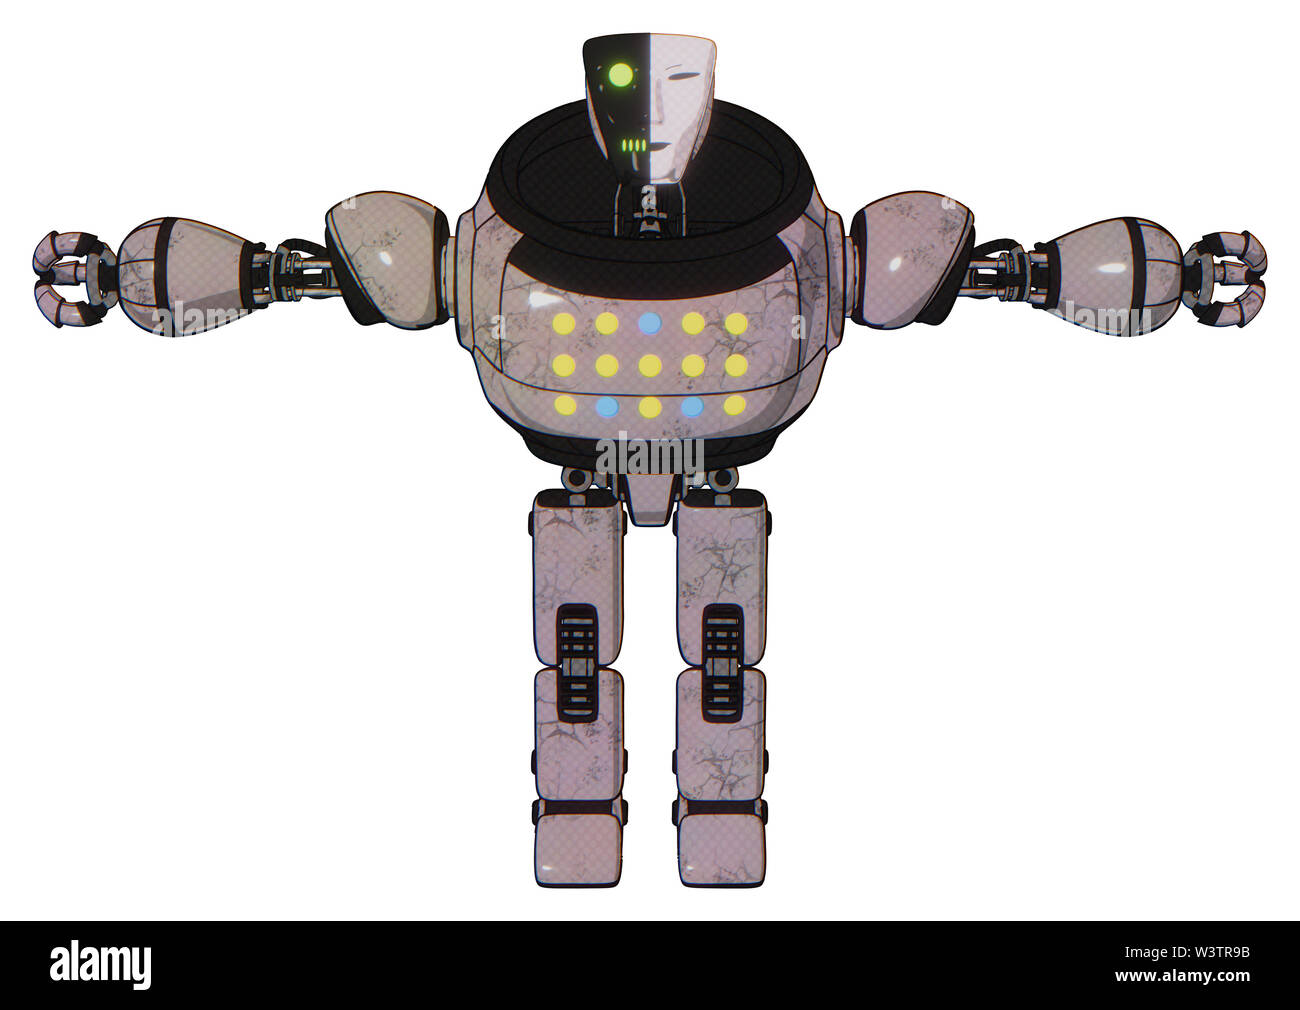 Robot containing elements: humanoid face mask, two-face black white mask, heavy upper chest, colored lights array, prototype exoplate legs. Material:. Stock Photo